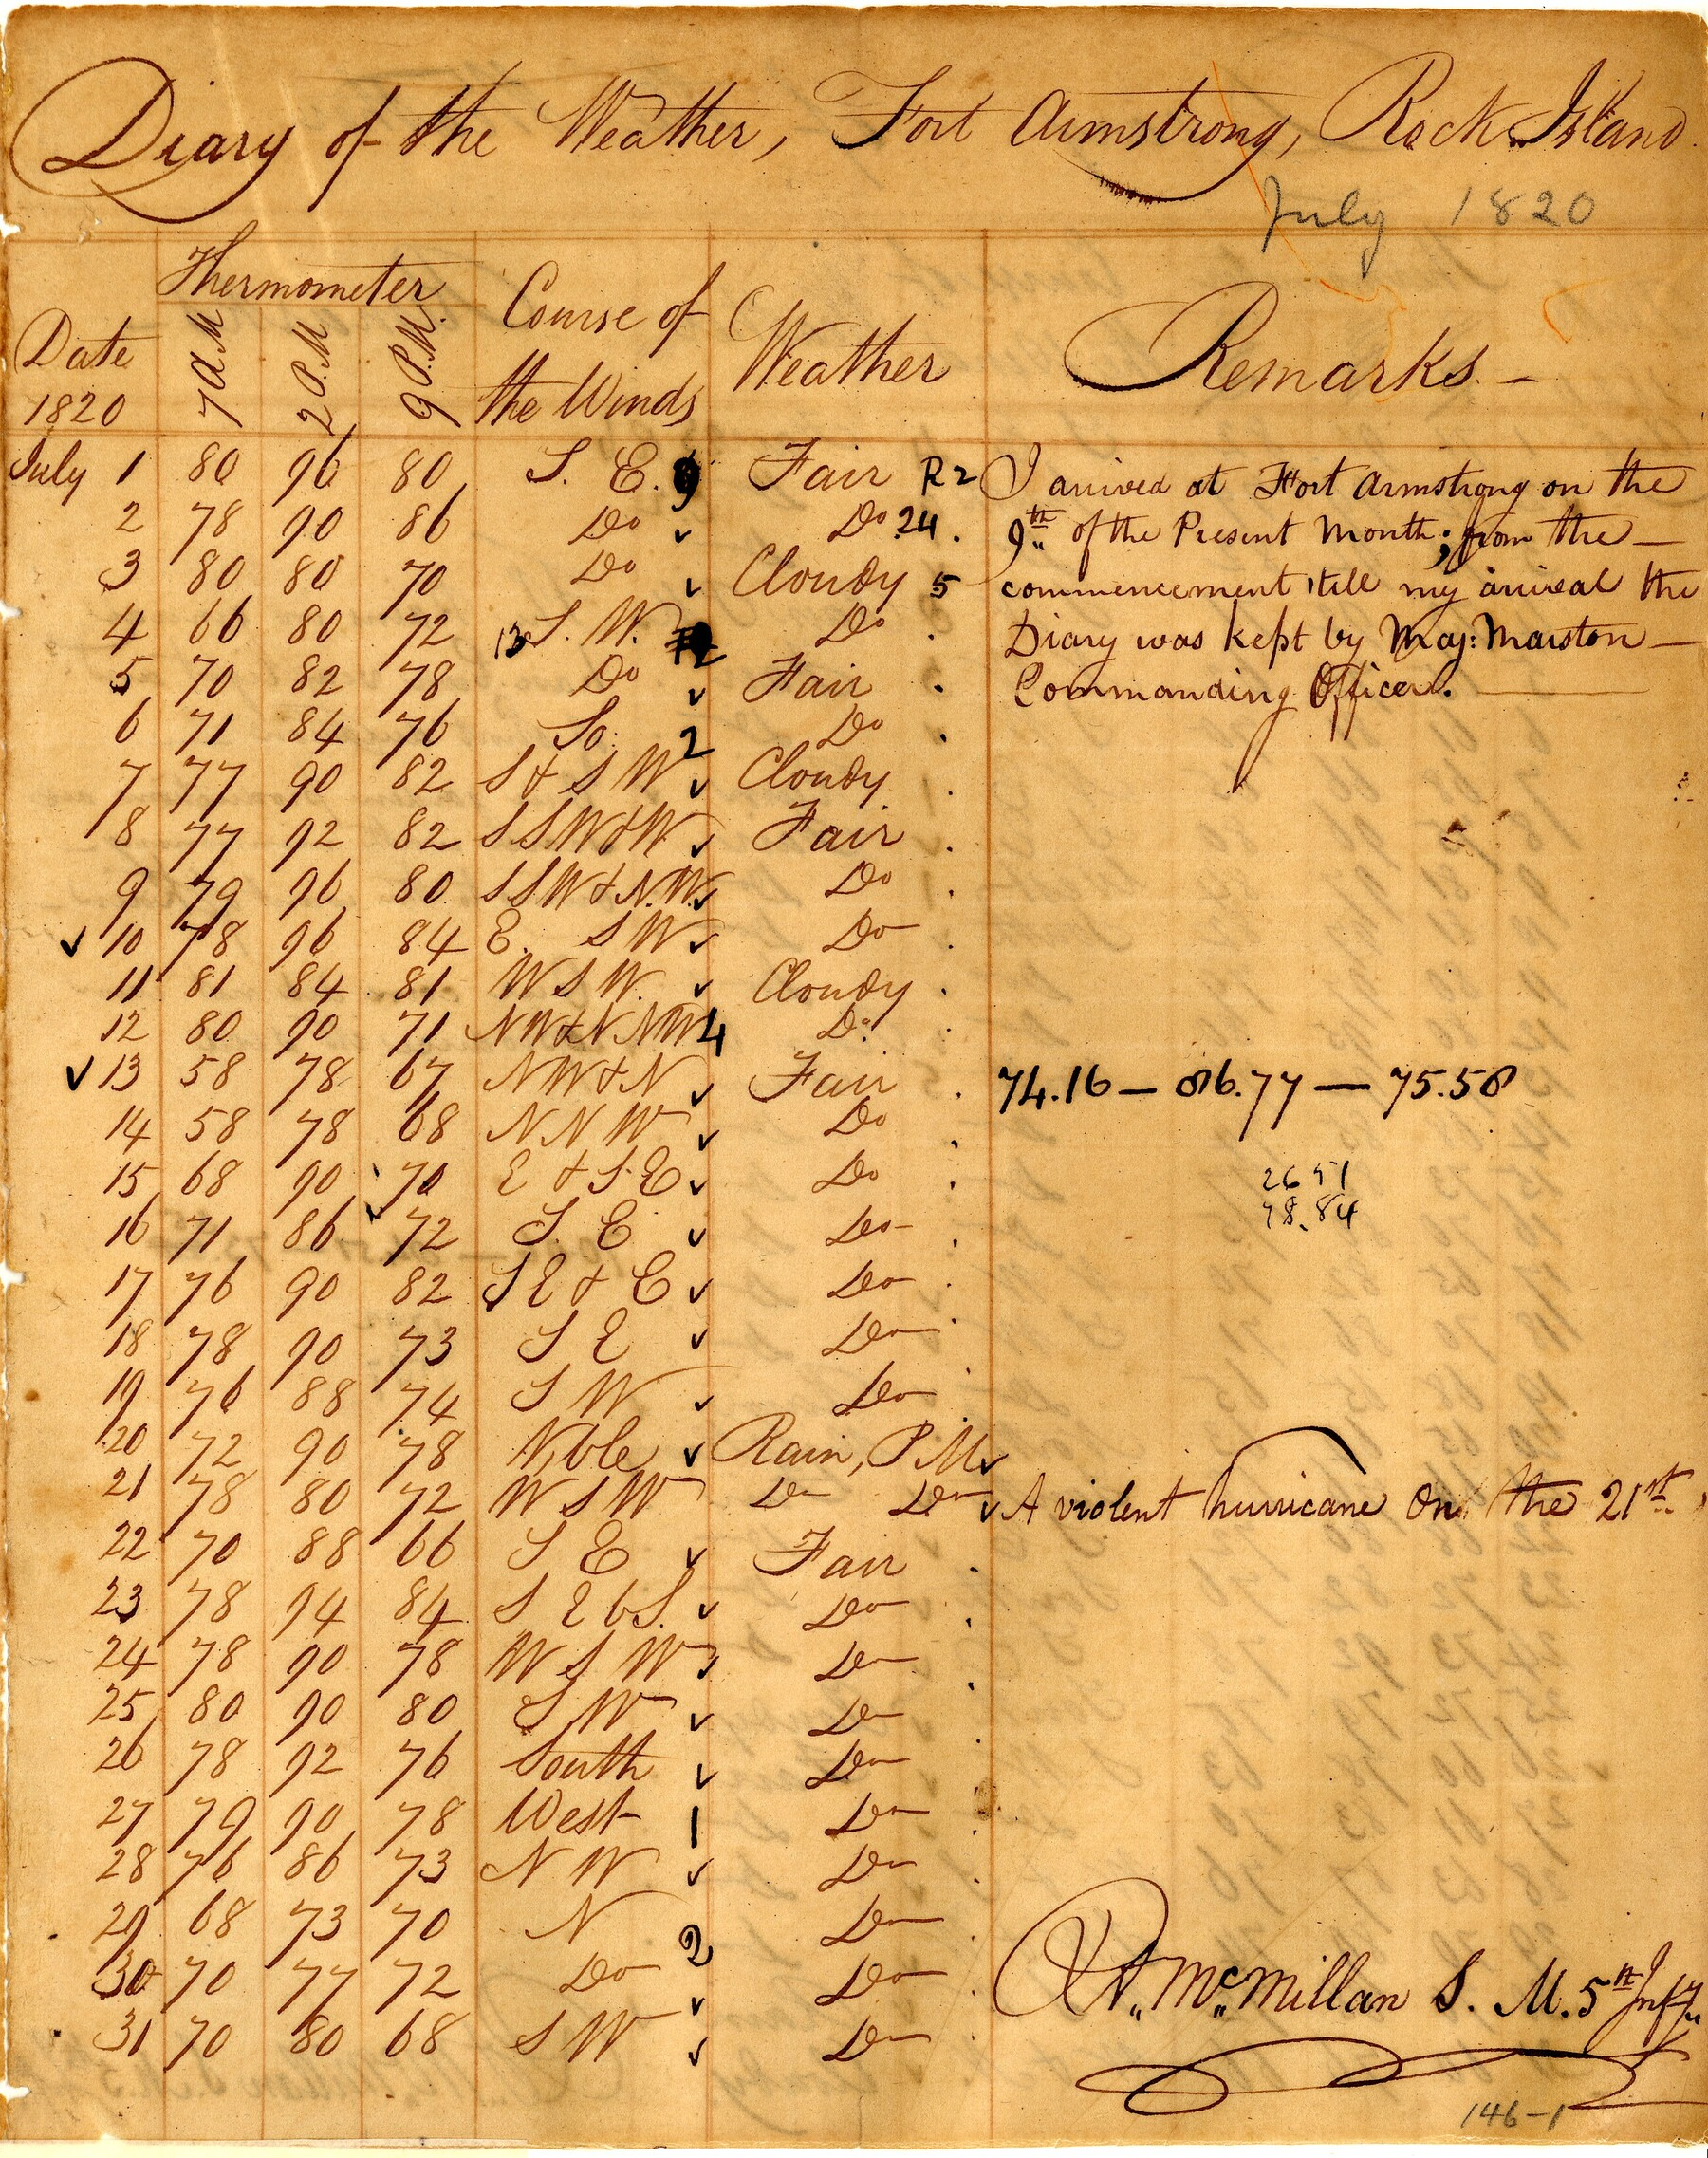 Fort Armstrong 1820 weather records